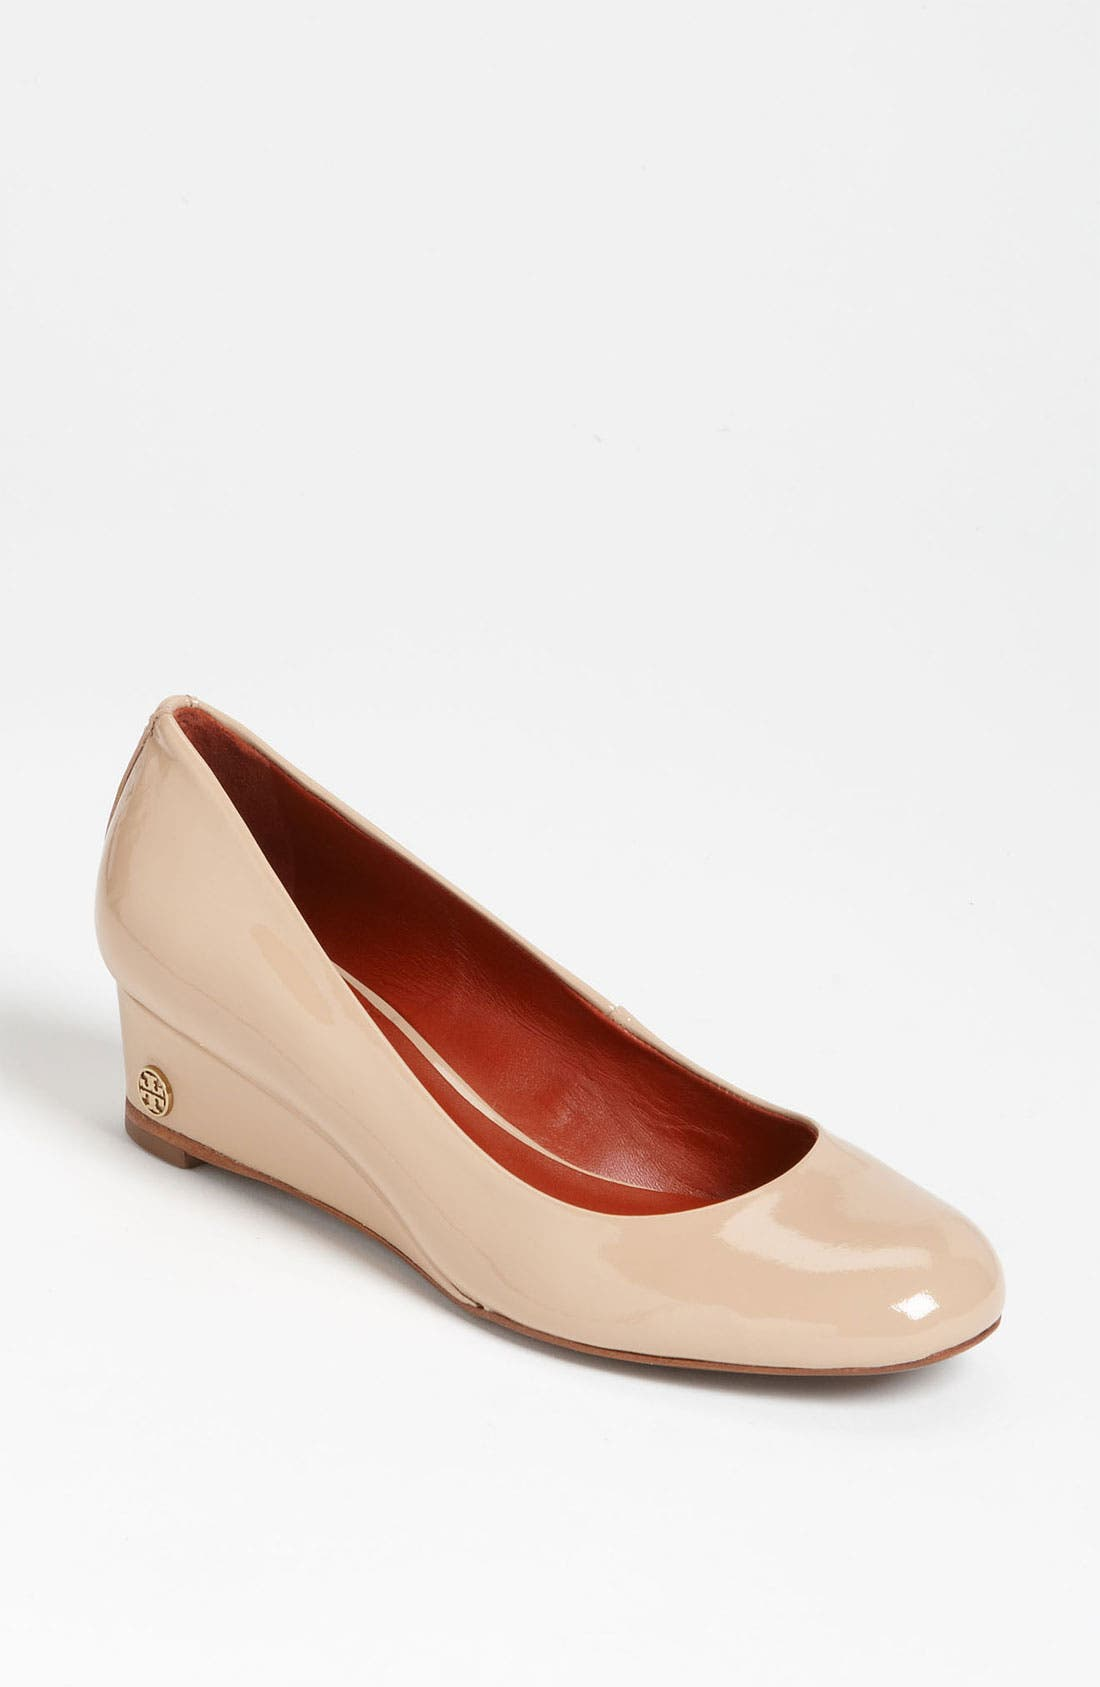 Alternate Image 1 Selected - Tory Burch 'Annelise' Pump